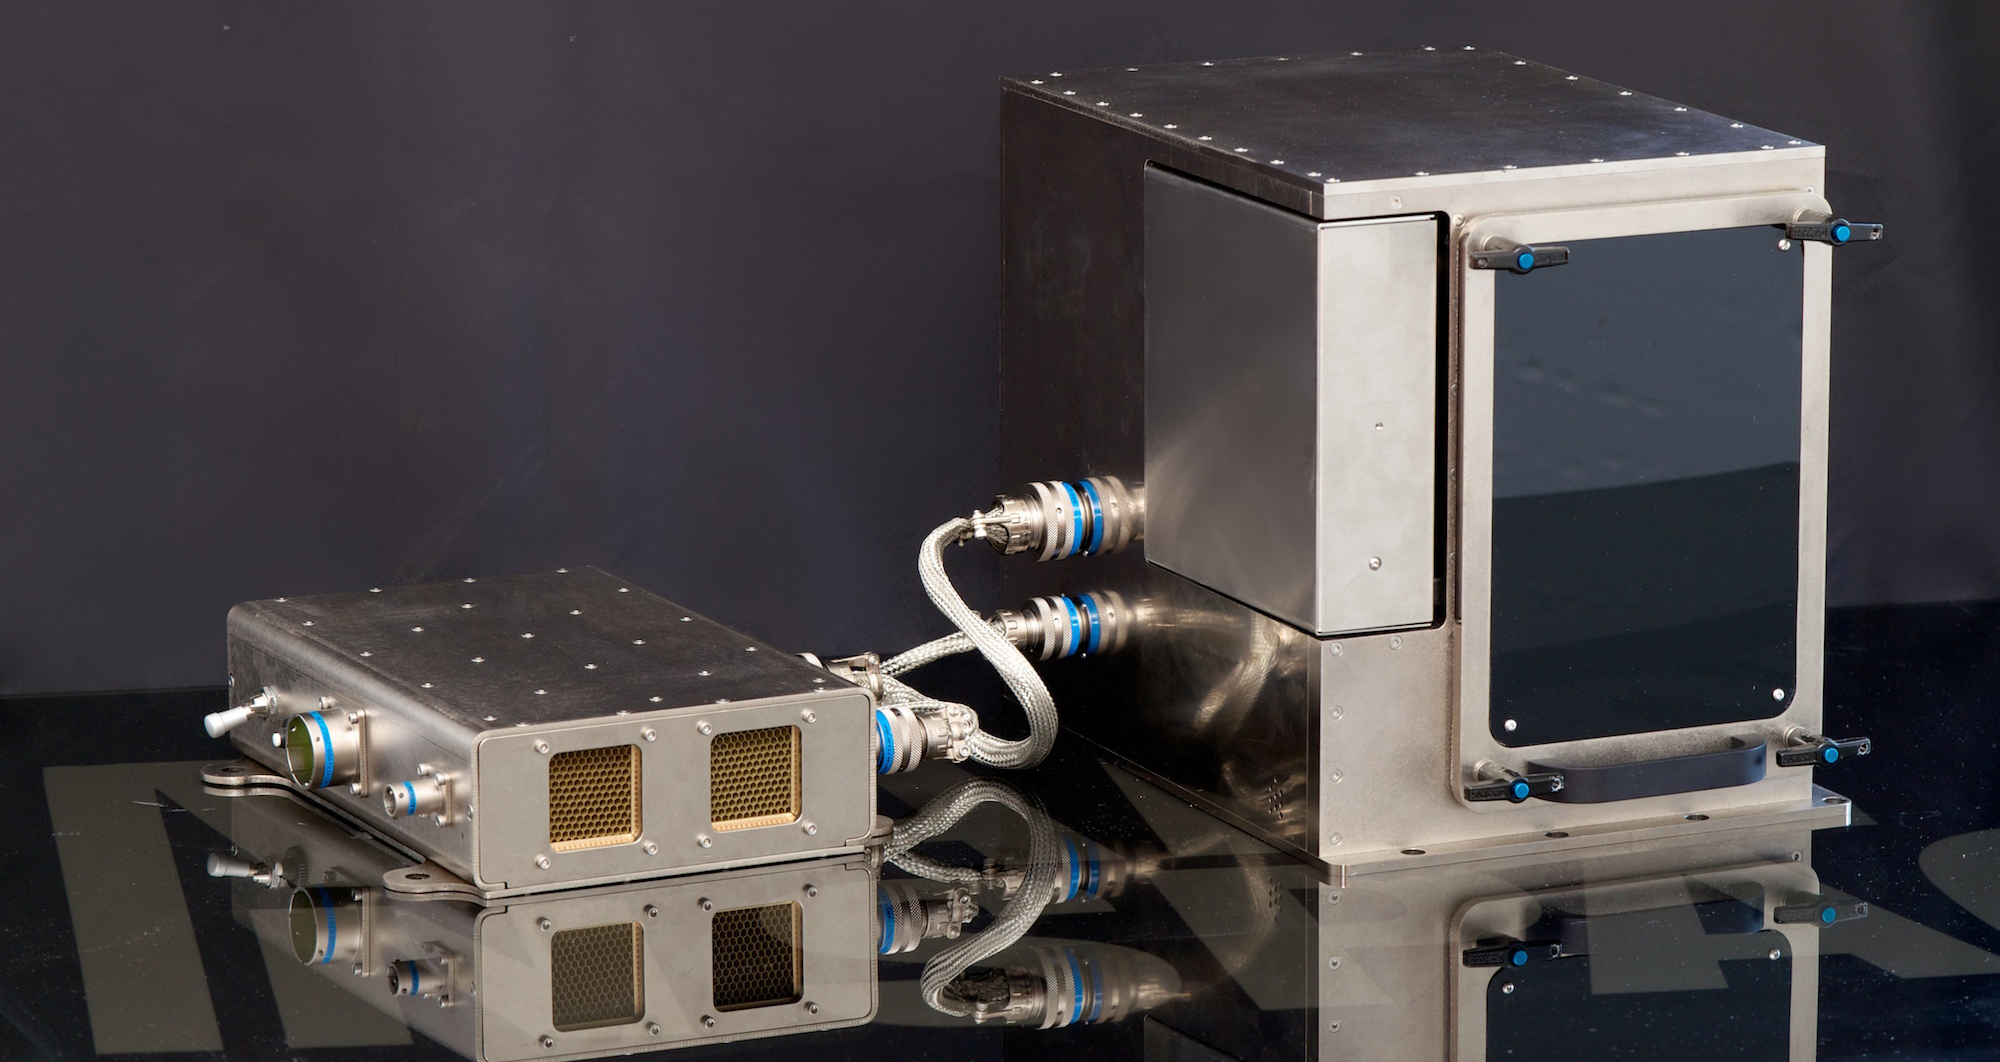 A 3D printer testbed was installed on the International Space Station this week. Credit: Made in Space